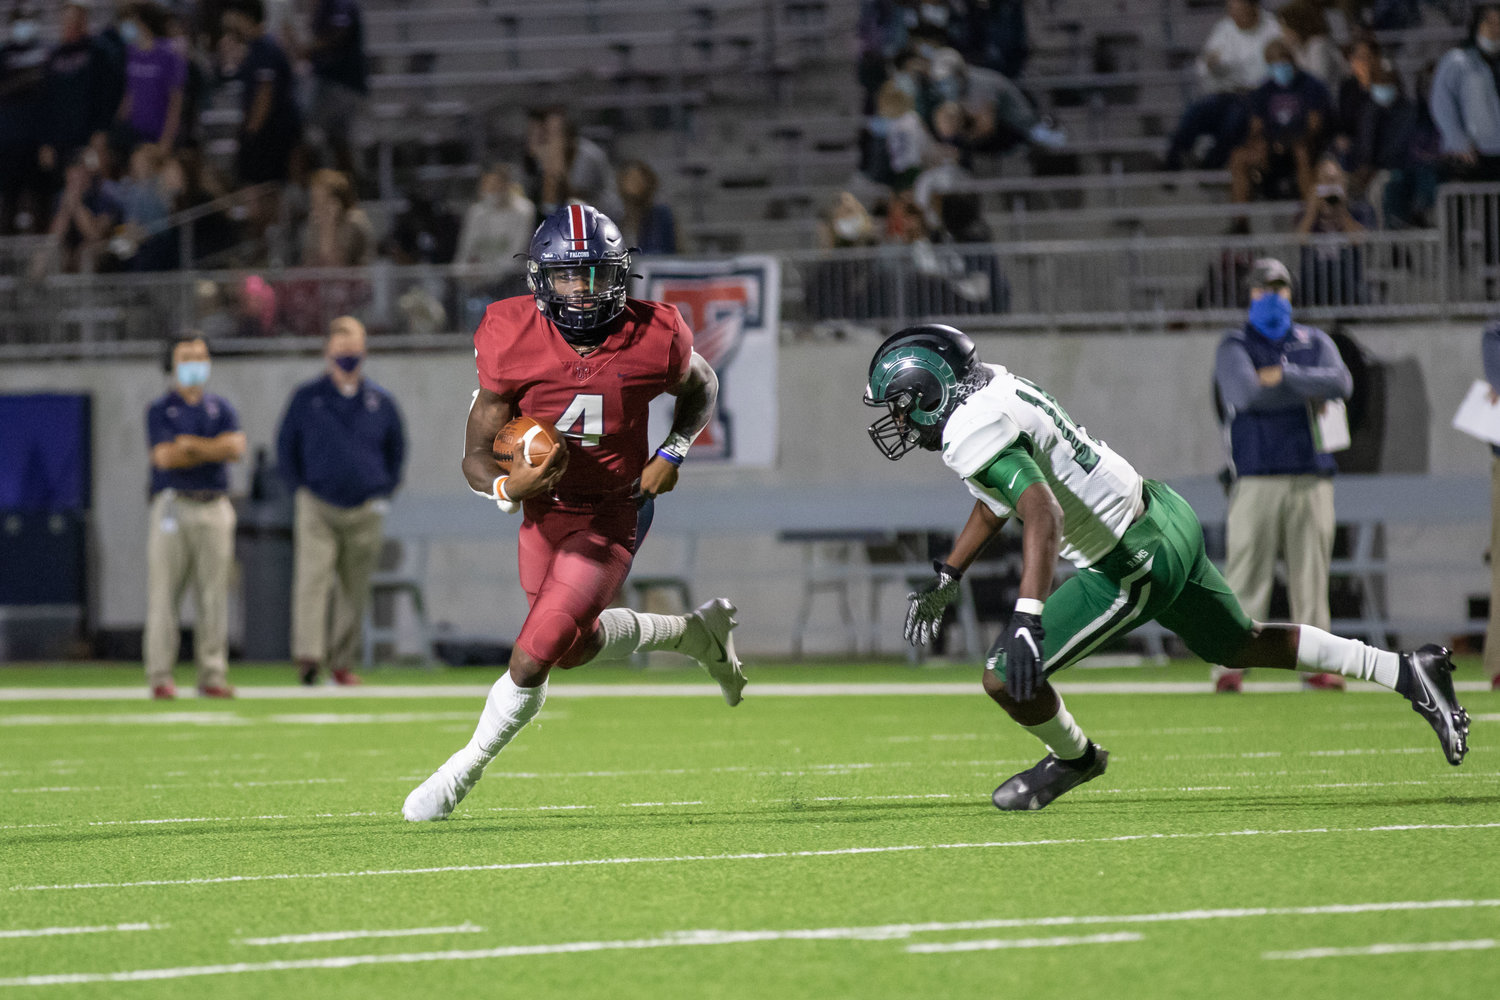 Tompkins quarterback Jalen Milroe eludes defenders during the Falcons' win over Mayde Creek on Thursday evening at Legacy Stadium.